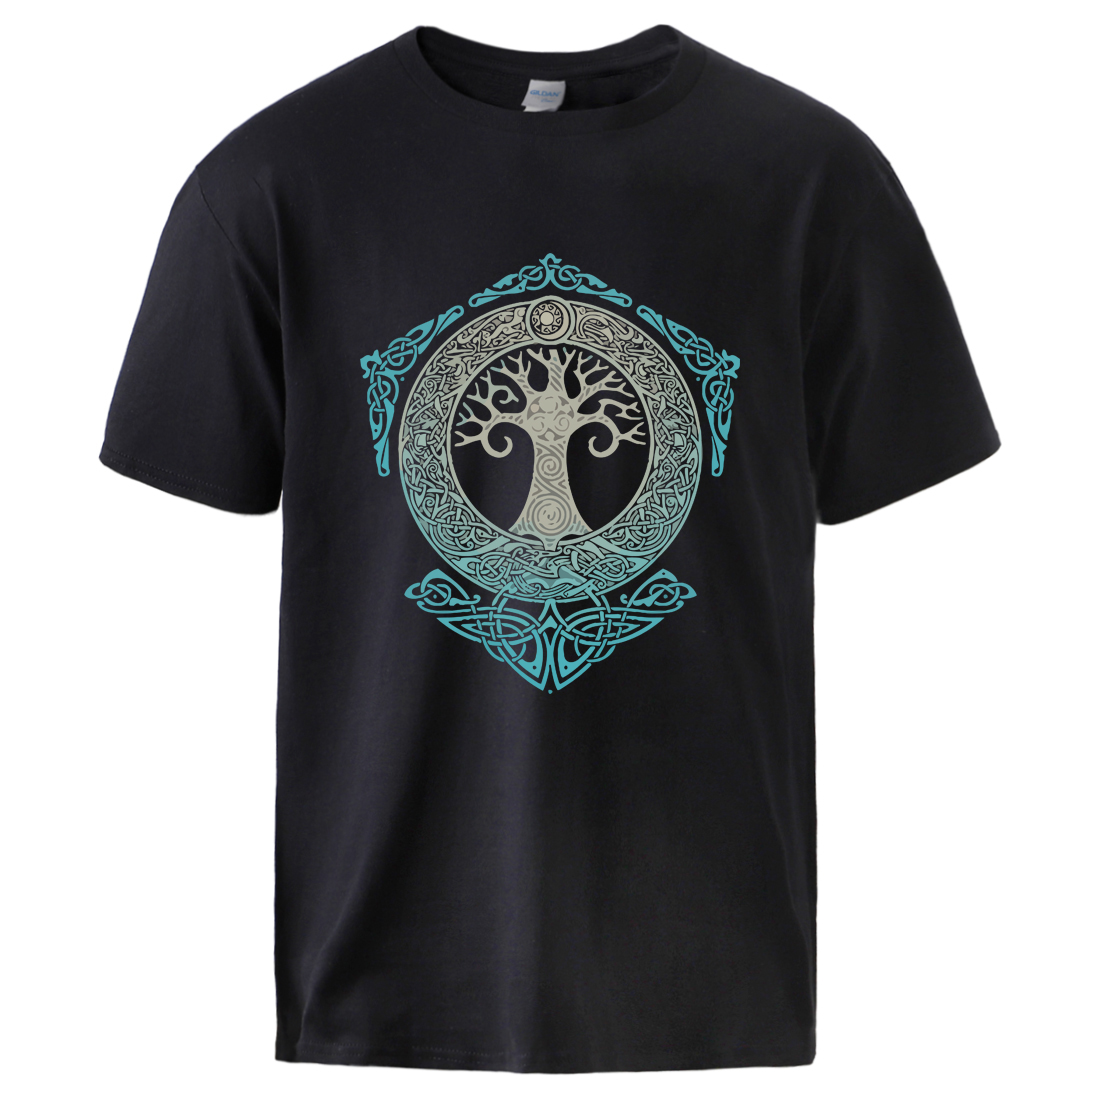 Tshirts Norse Mythology Vikings Yggdrasil Cotton Sportswear Short Casual for Man Summer